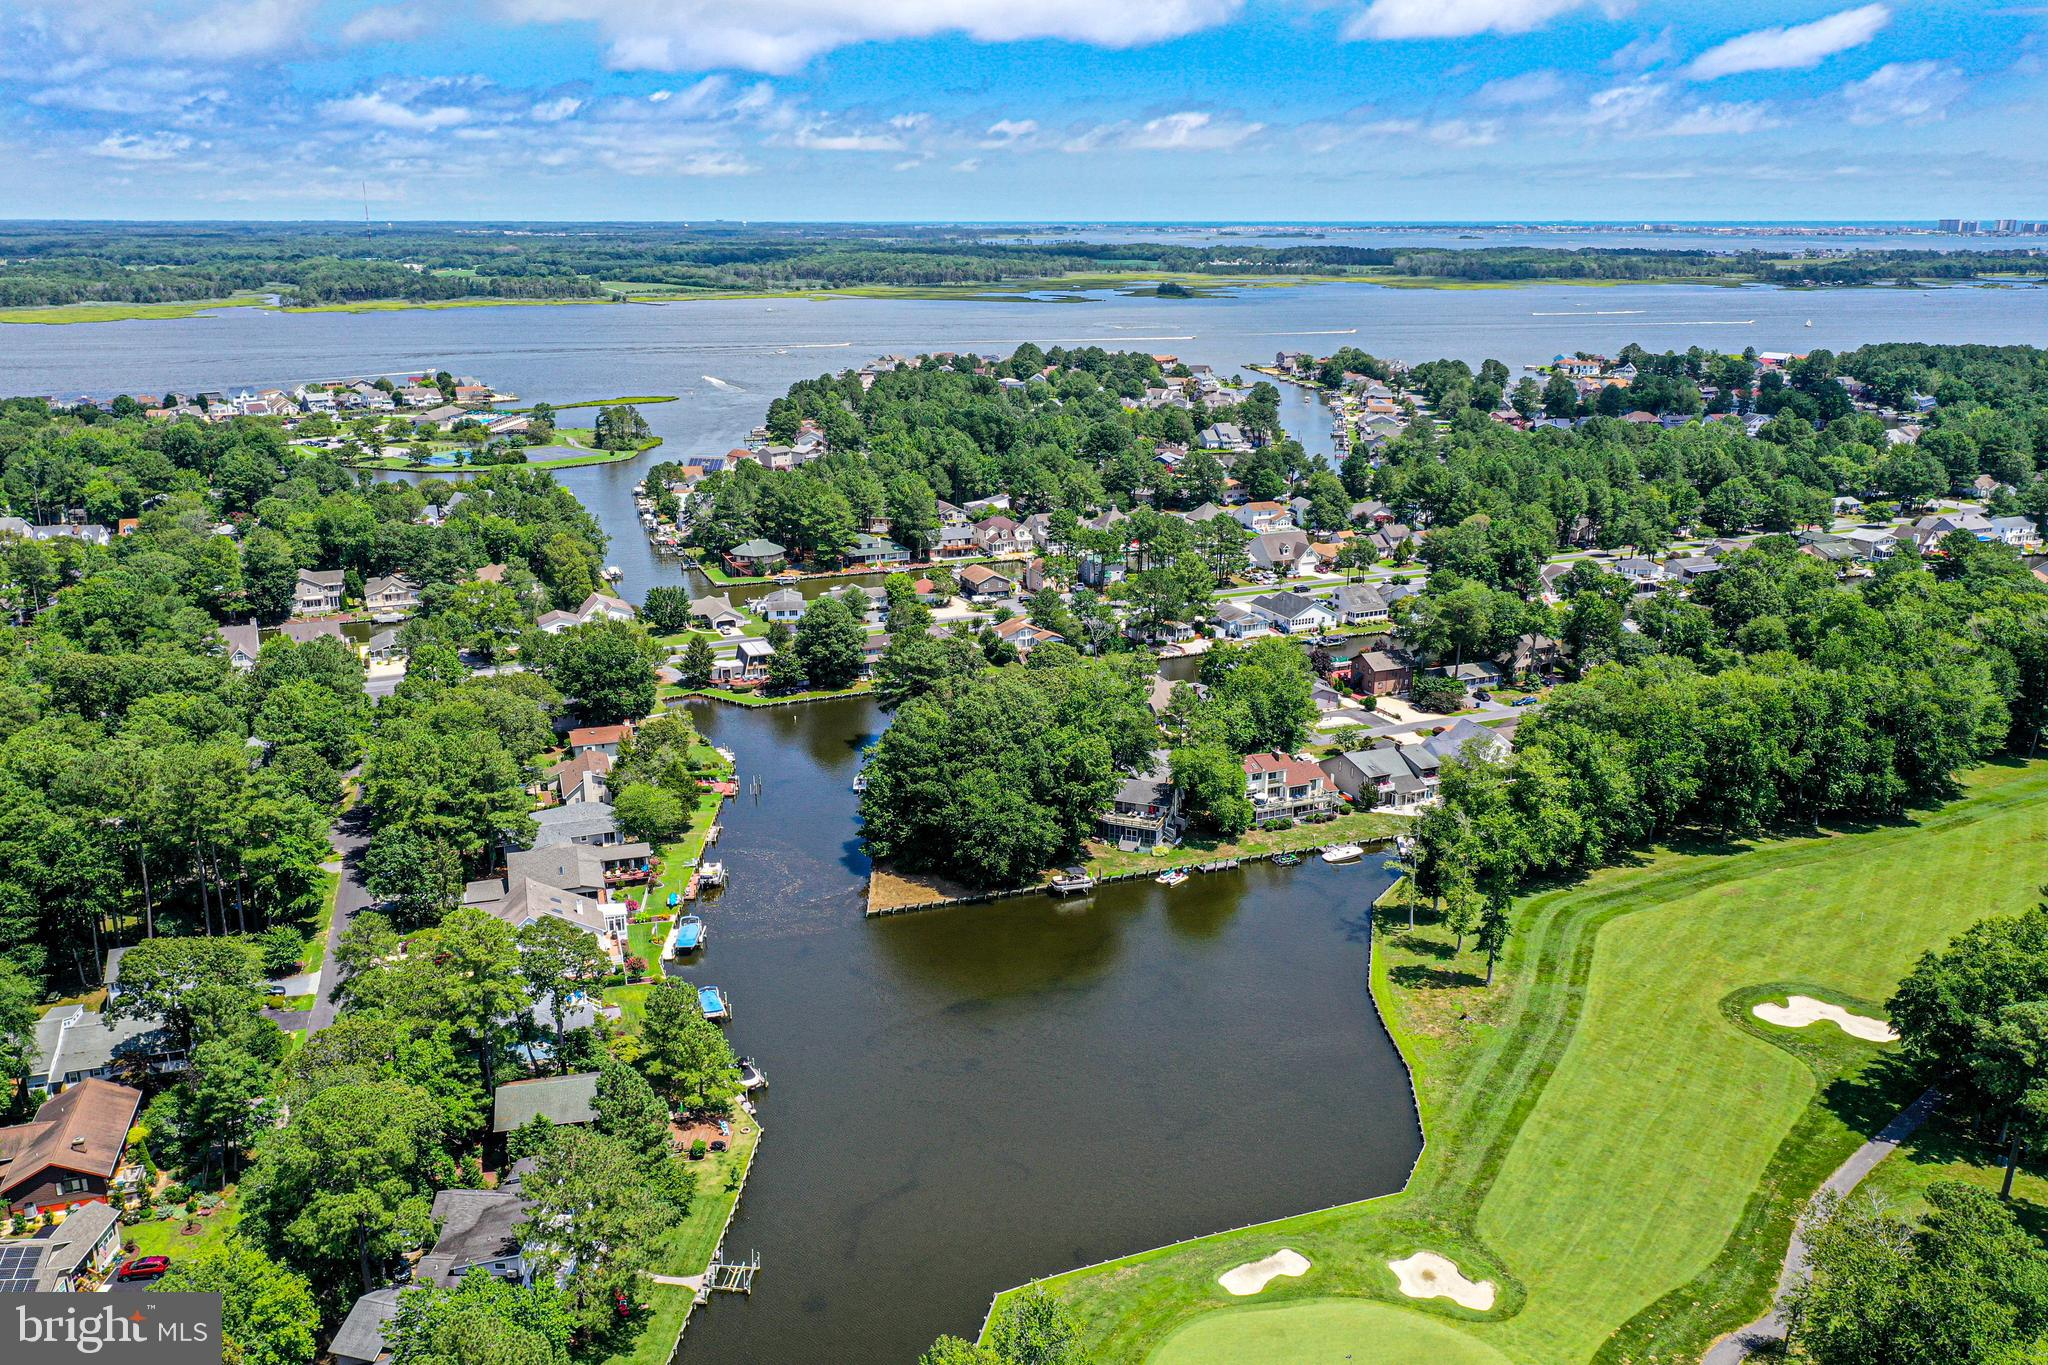 STOP, LOOK & LISTEN--One Of A Kind! Ultra-Large Wooded Waterfront Lot With Approx. 200 Feet Of Bulkhead That Offers Southern Exposure, Unobstructed, Panoramic Open View Of Large Lagoon, Fairways And Greens Of Golf Course. 1/2+ Acre With 31,597 Square Feet Including Riparian Rights Allowing One To Build The House Of Choice Located On A Cul De Sac Near The Country Club And Golf Course. Boating Is Minutes Away From Ocean City And Atlantic Ocean. This Is The Only Available  Wooded Waterfront Lot Of This Size With Unique And Ultimate Views .Shop And Compare!  Seller (Husband) Is Licensed To Sell Real Estate In The State Of  Maryland.